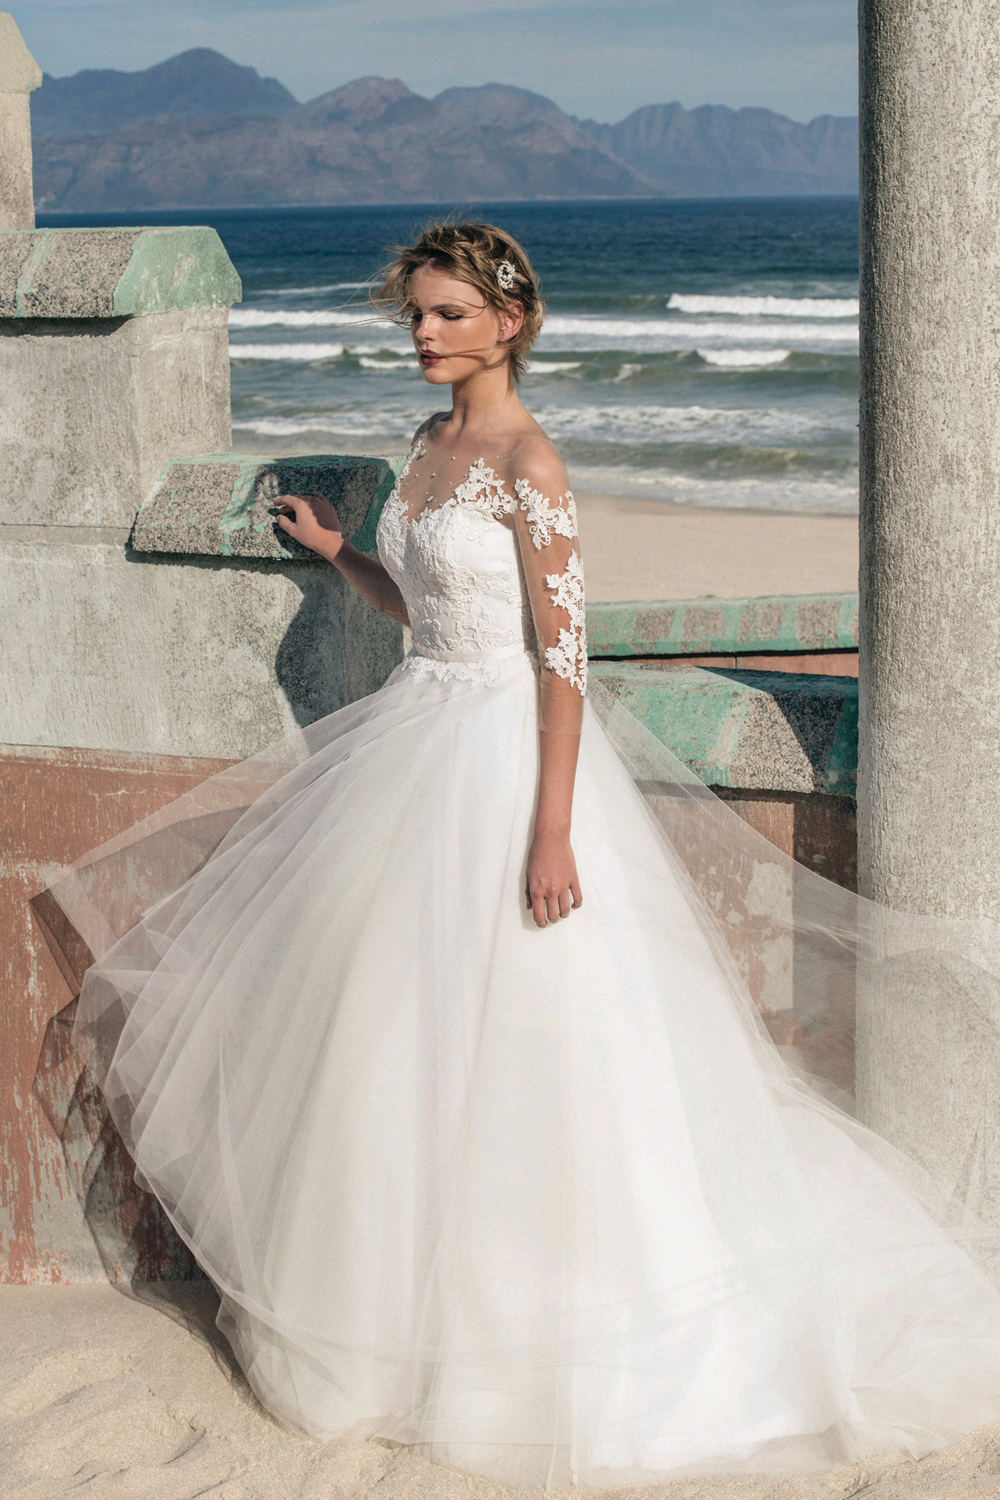 Glamour Lace Appliqued Illusion Bateau Neck A-line Tulle Wedding Dress with Beading